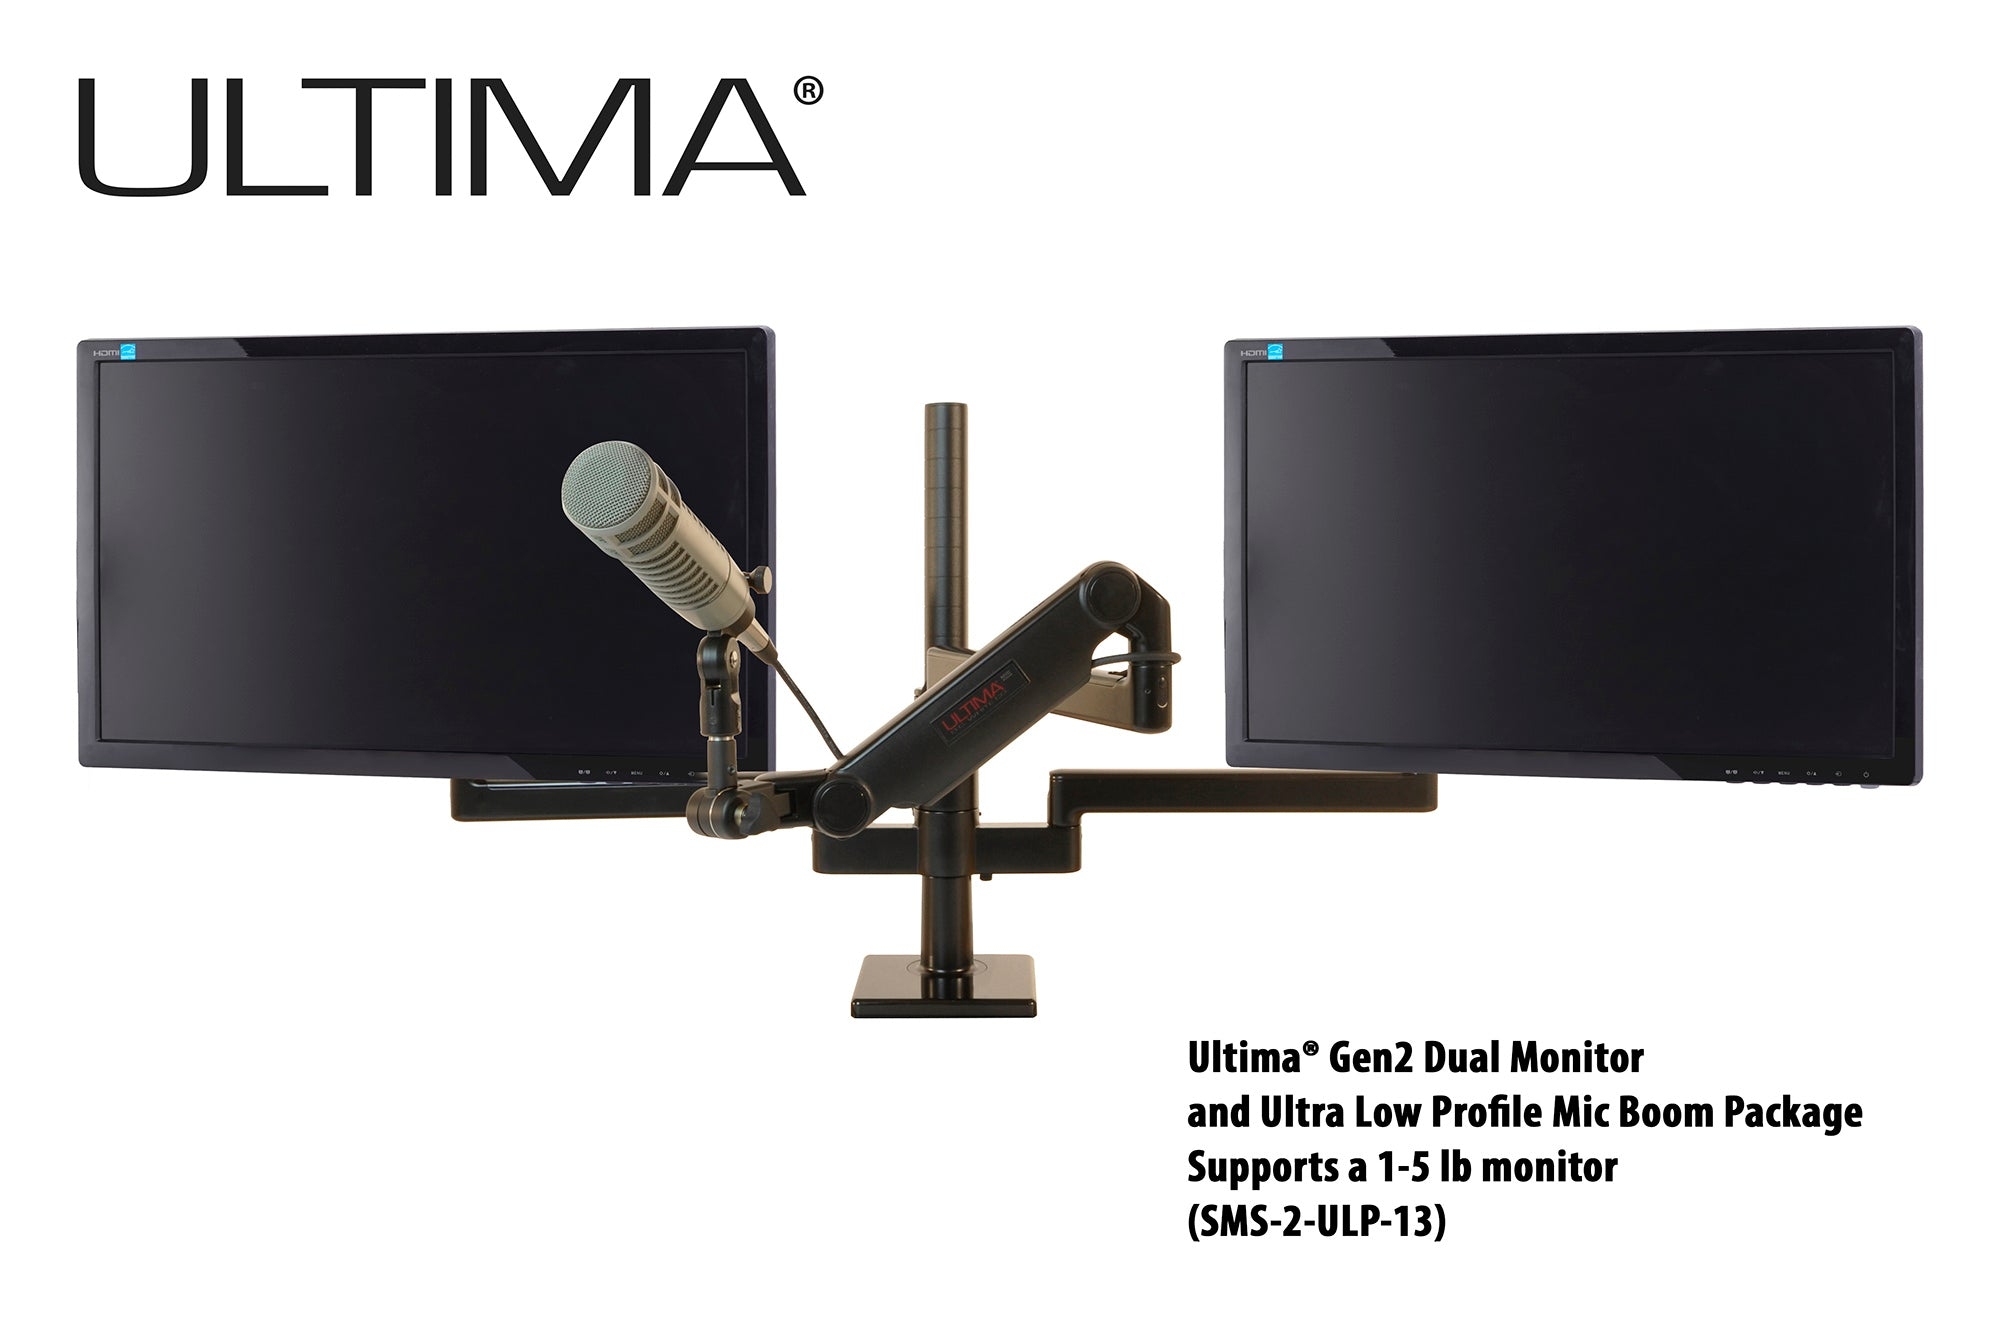 OC White SMS-2-ULP-13 & SMS-LD-2-ULP-13 Series ProBoom® Ultima® Gen2 Dual Monitor and Mic Boom SMS Package - 305broadcast